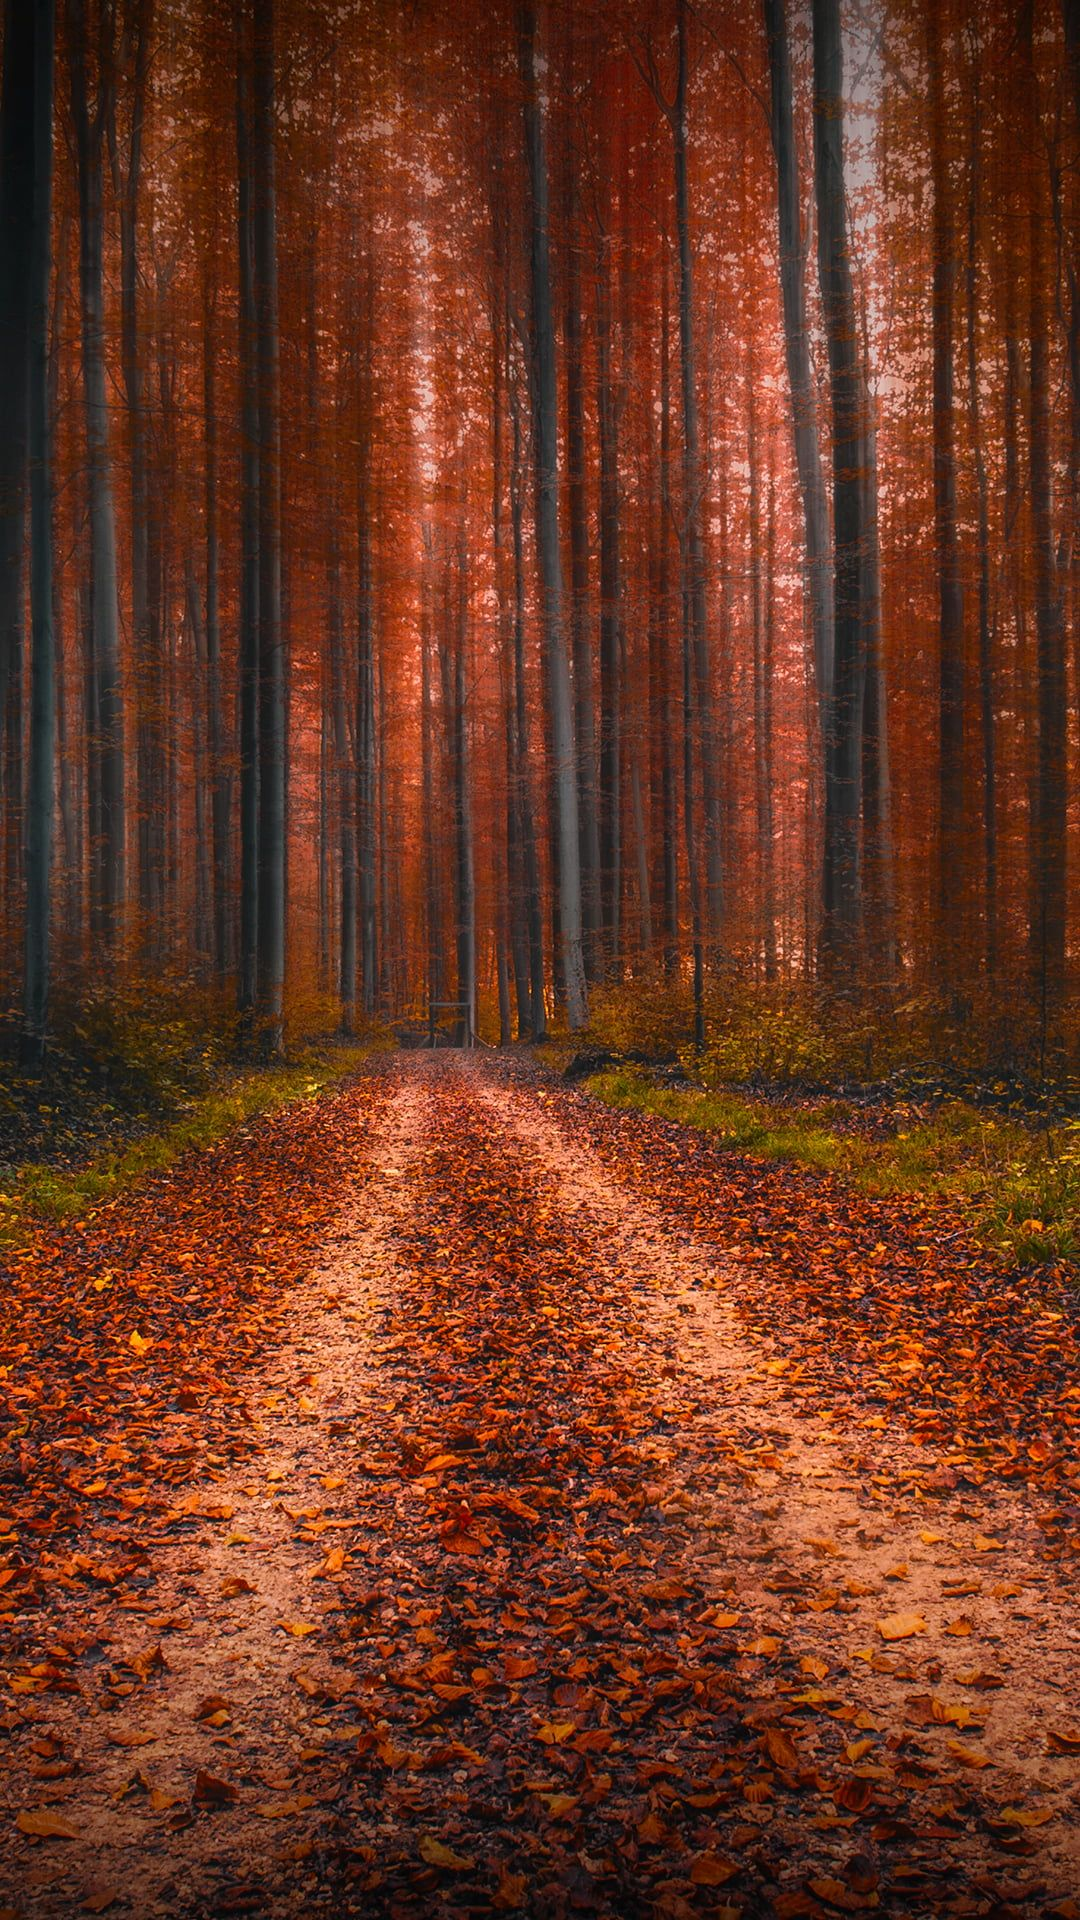 Brown And Black Area Rug Nature Landscape Portrait Display Leaves Fallen Leaves Dirt Road Trees Forest Fall 1080p Wallpaper Lonely Art Nature Landscape